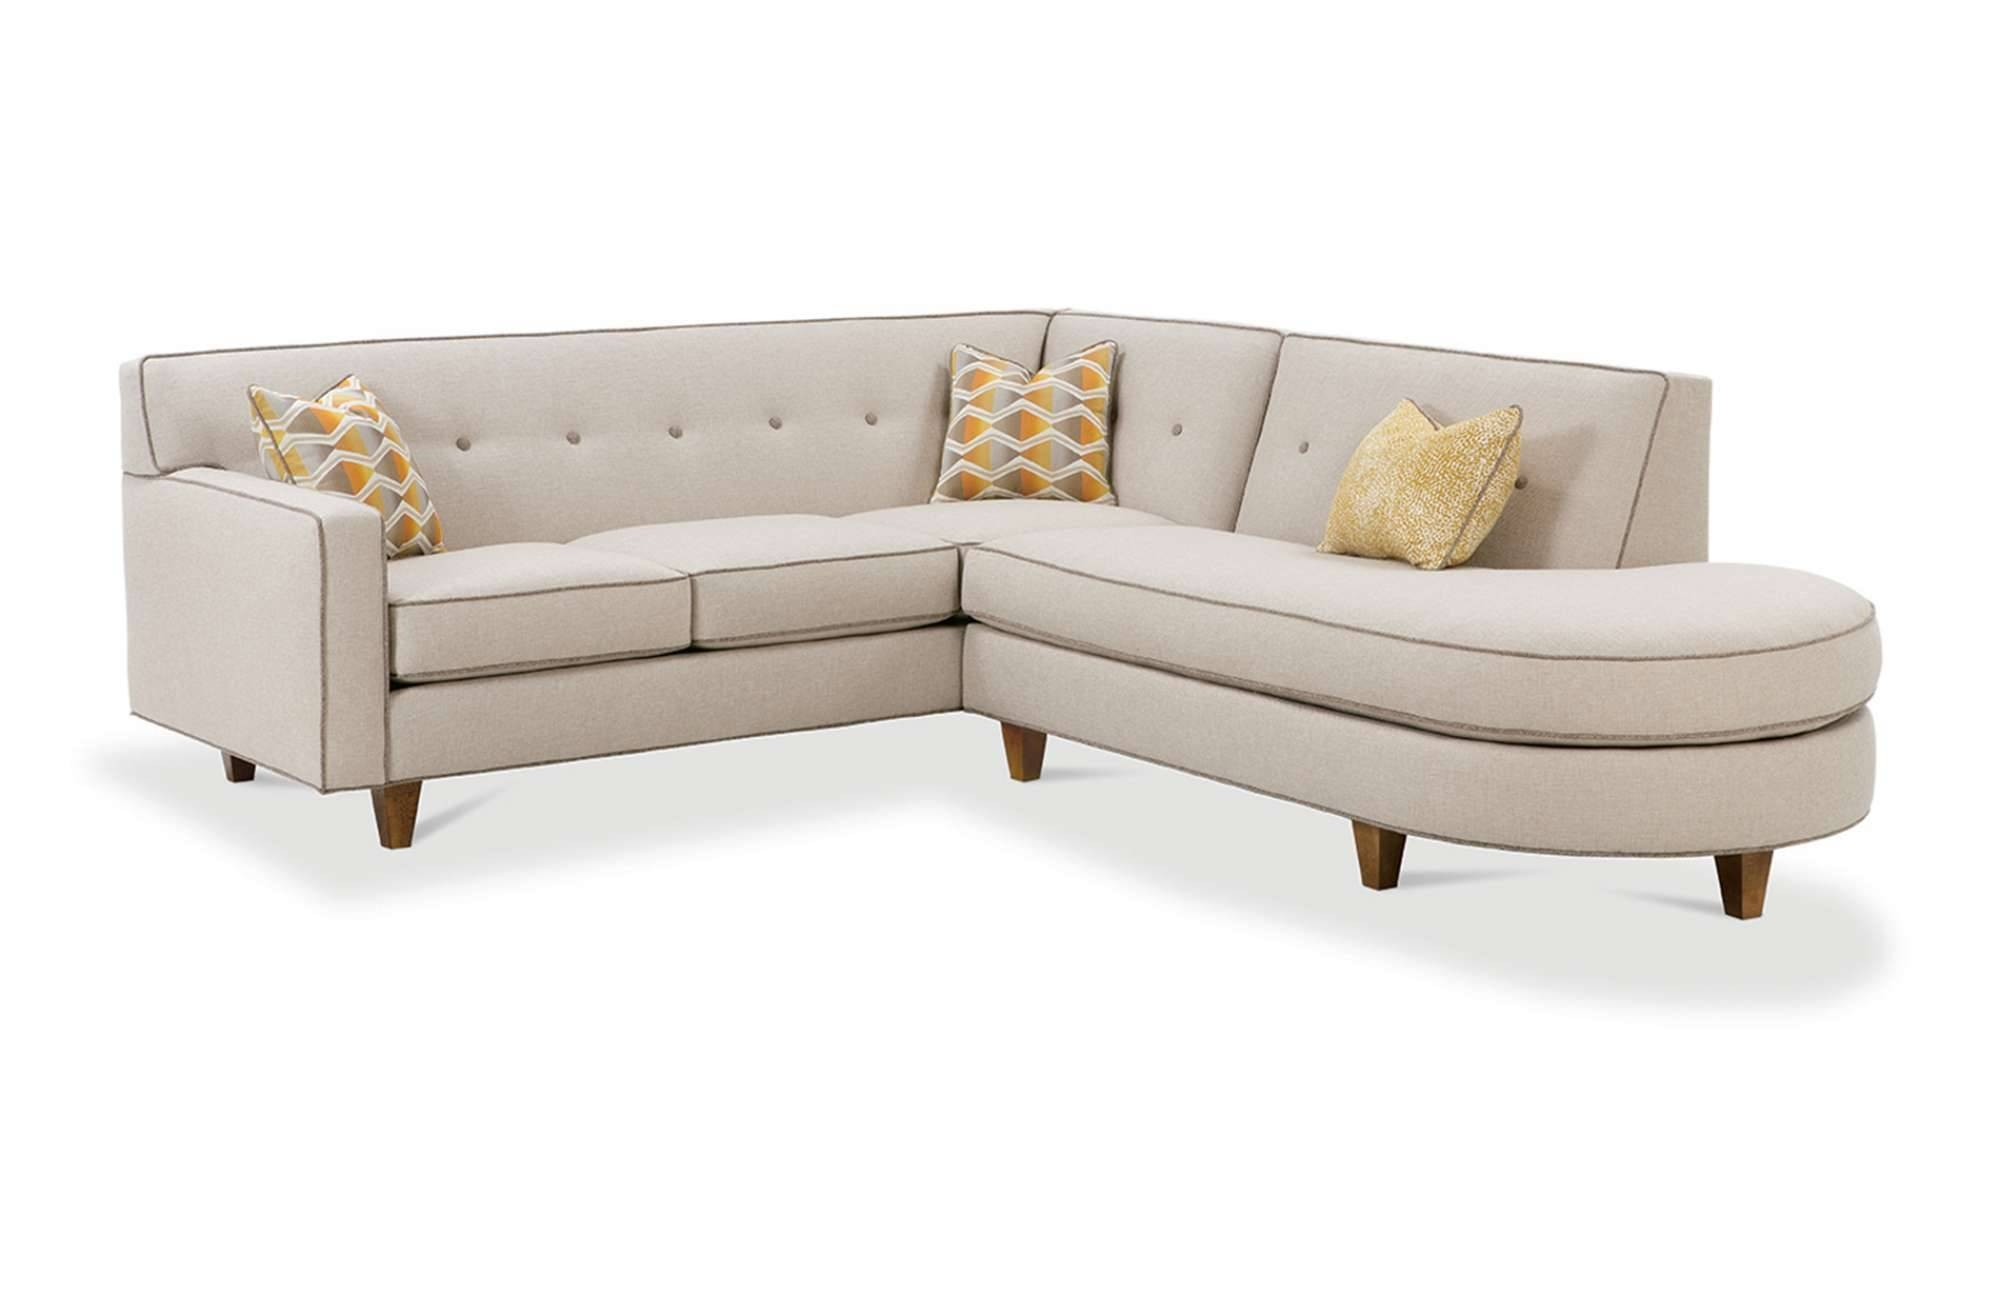 Dorset Sectionalrowe Furniture within Rowe Sectional Sofas (Image 2 of 15)